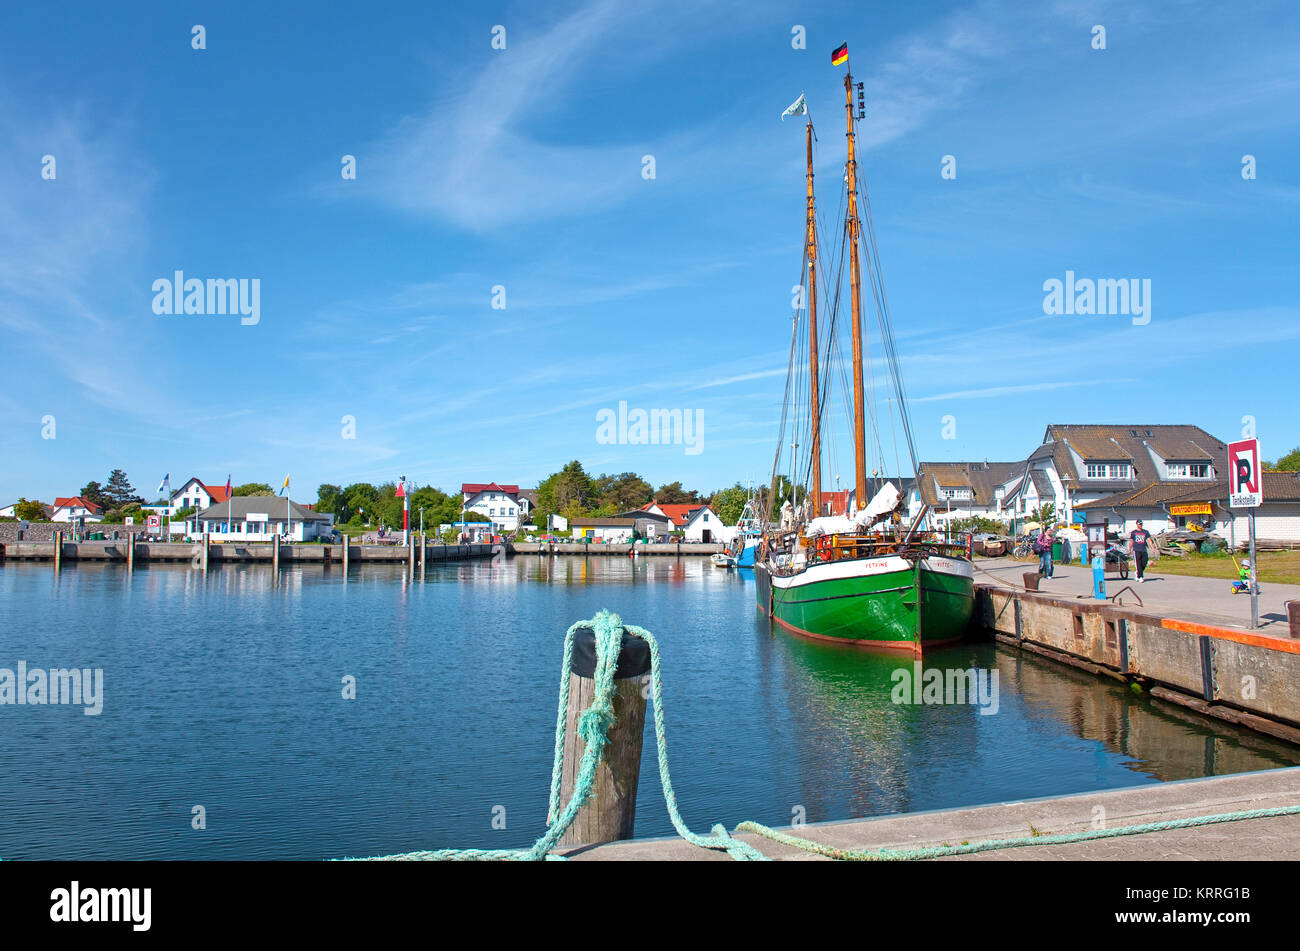 Brigantine at harbour of village Vitte, Hiddensee island, Mecklenburg-Western Pomerania, Baltic Sea, Germany, Europe - Stock Image